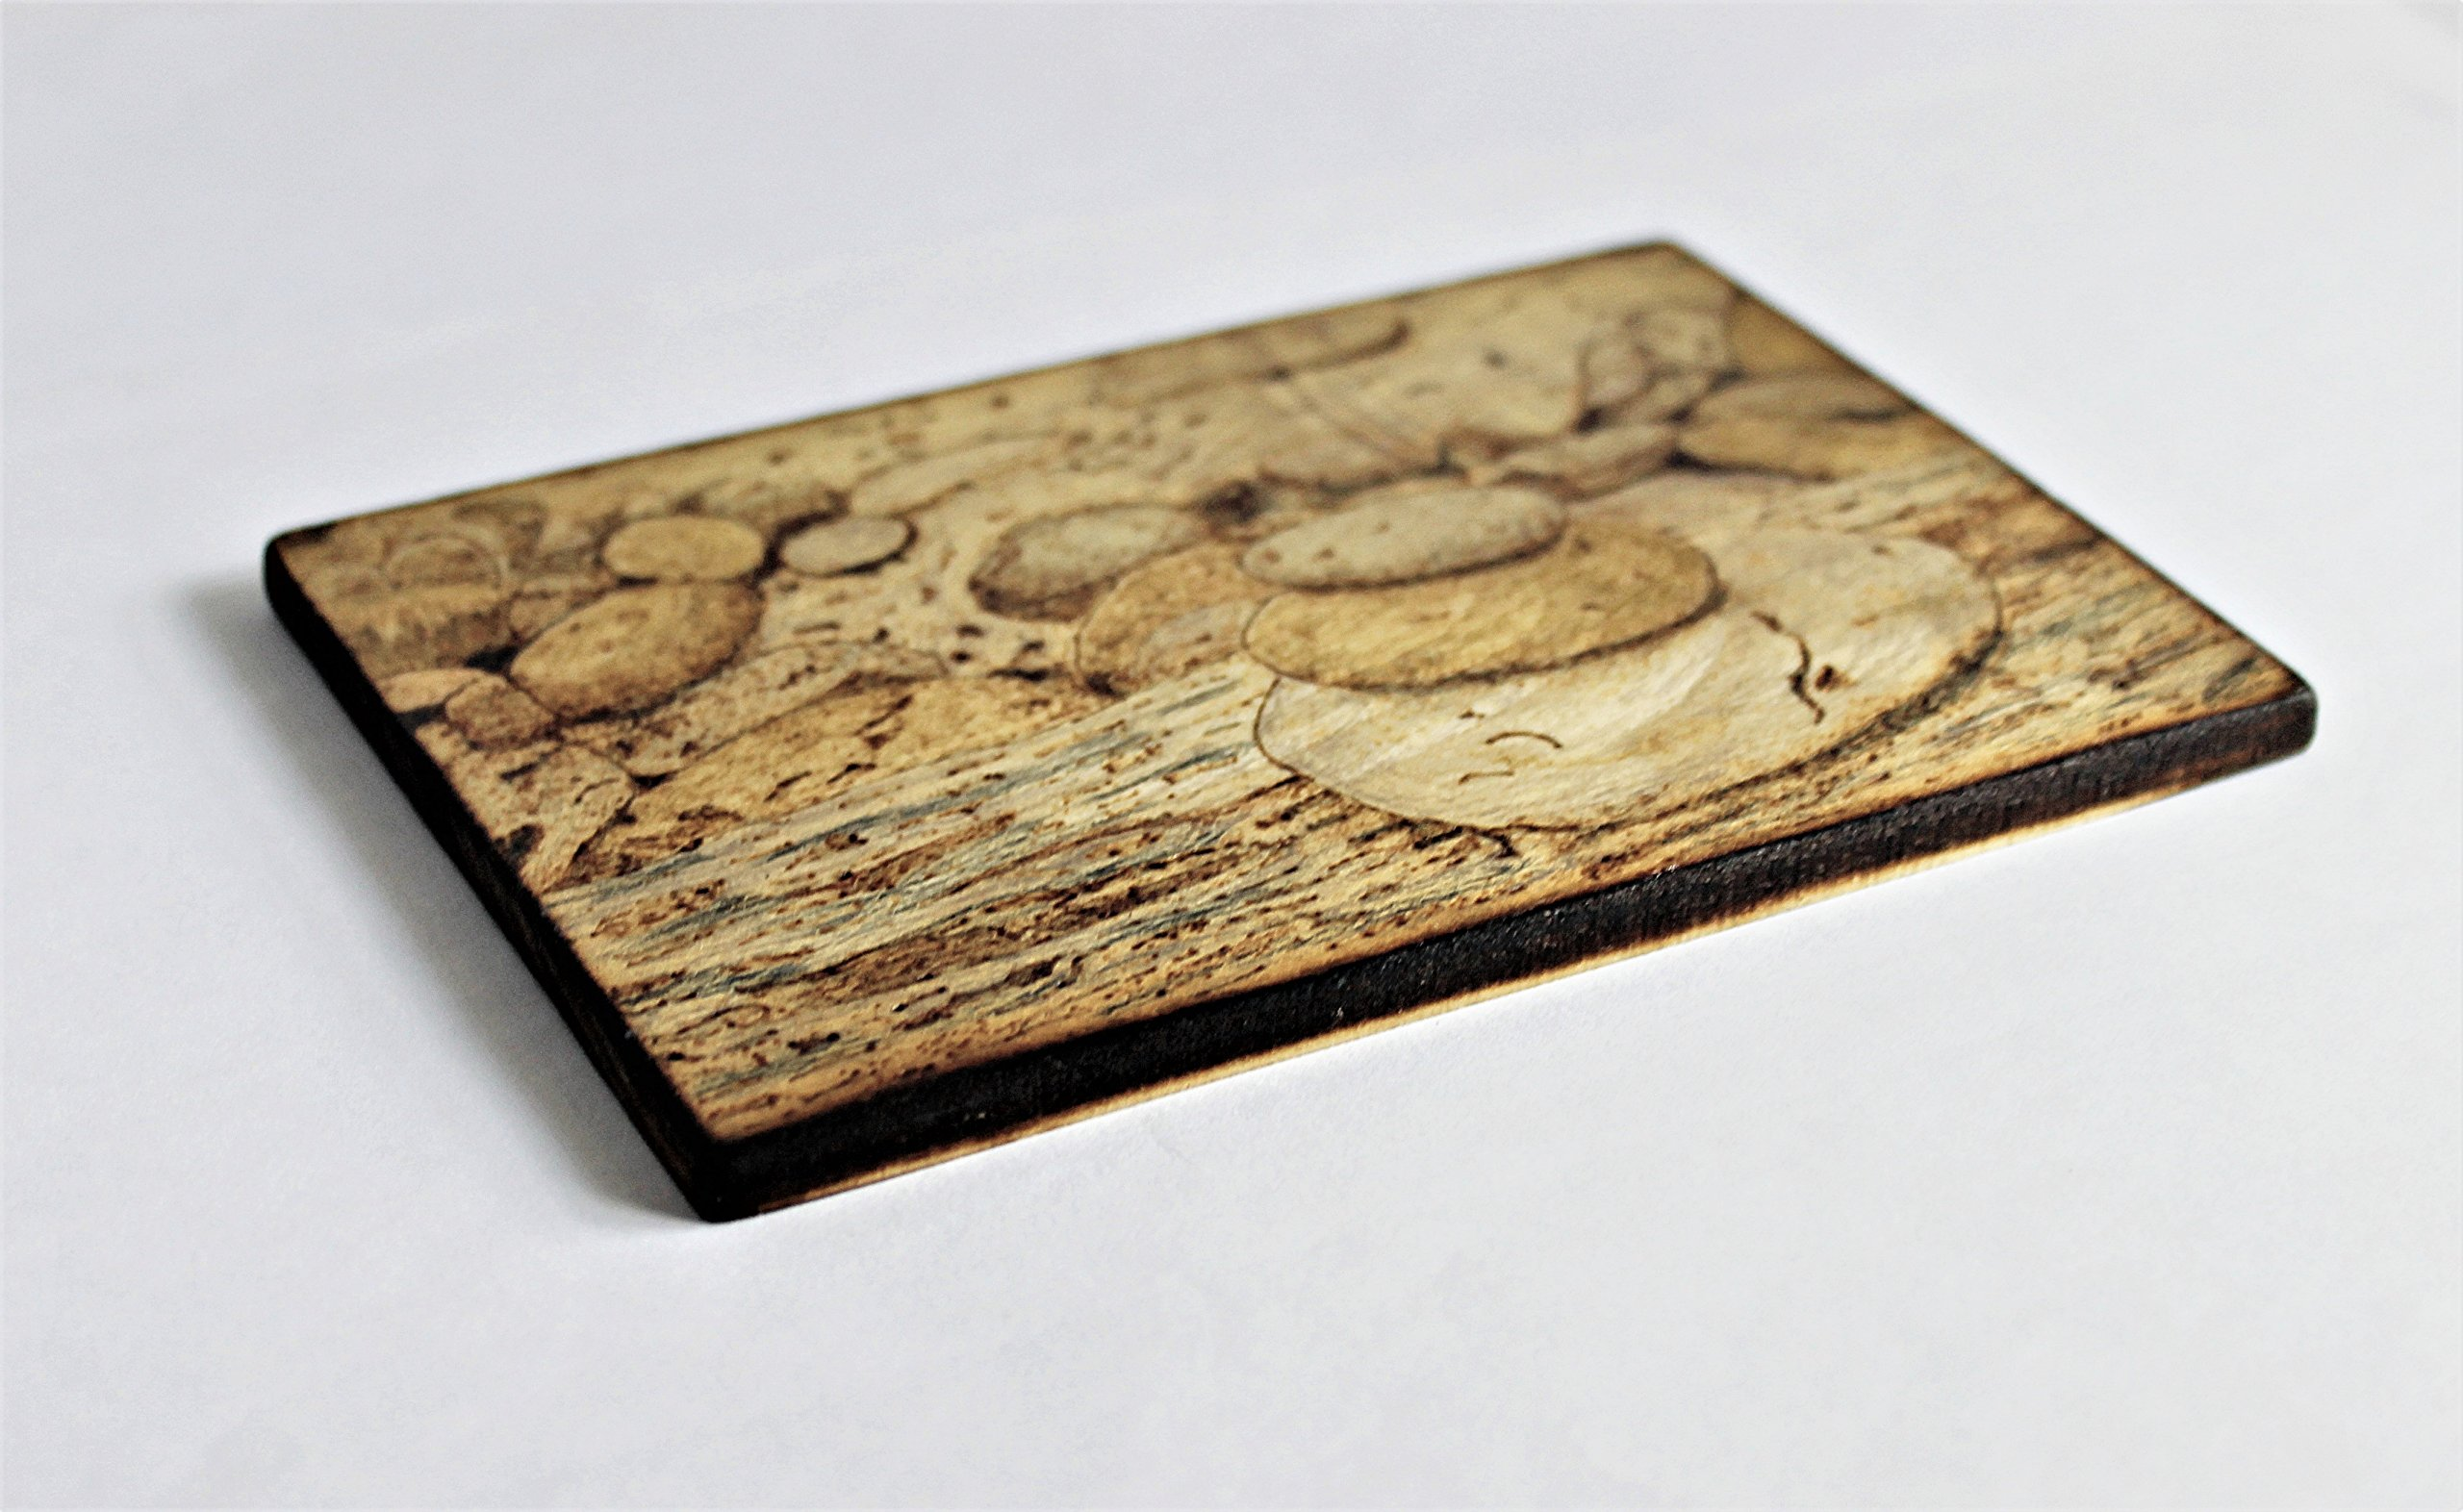 Wood Burned Cairn Stones Pyrography Small Woodburned Nature Rocky Shoreline Picture Desktop Art by Hendywood (Image #3)